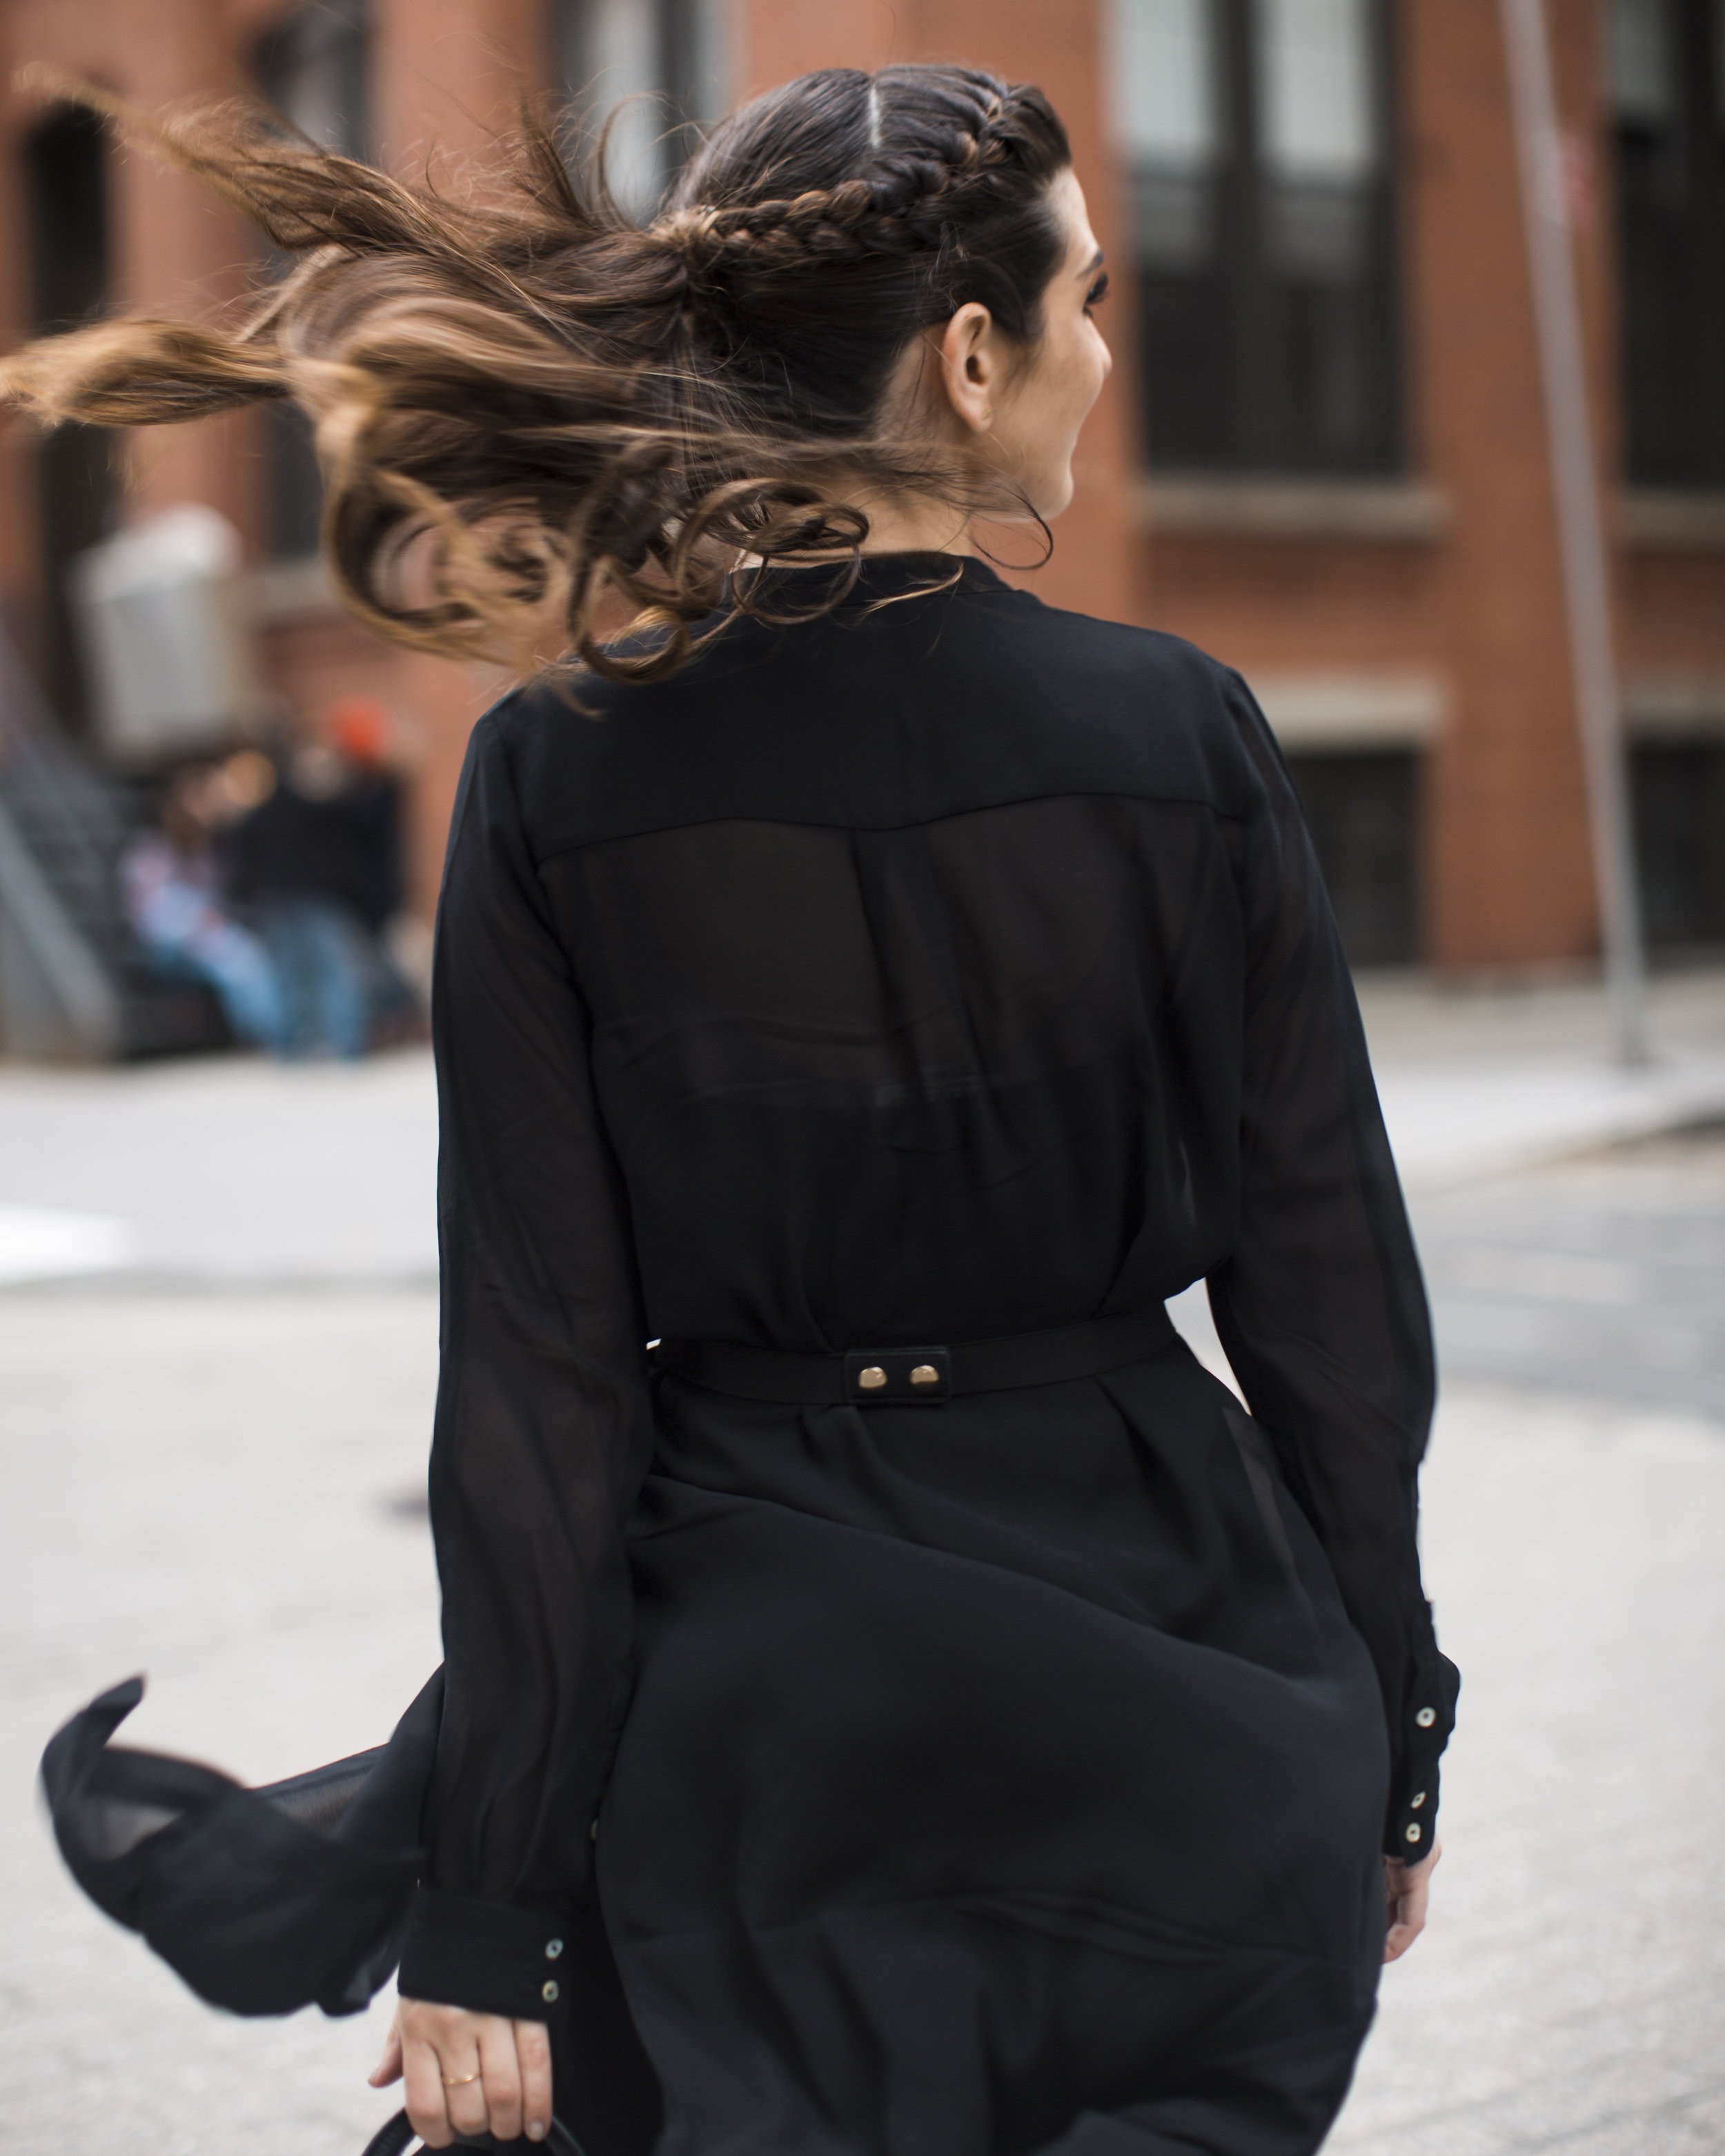 Gold Ribbon Pendant Leibish and Co. Diamonds Louboutins & Love Fashion Blog Esther Santer NYC Street Style Blogger Monochrome Mules Necklace Braid Hair Girl Women Shirt Dress All Black Red Lipstick Trendy Outfit Jewelry OOTD Inspo Wear Bag Shop Inspo.jpg